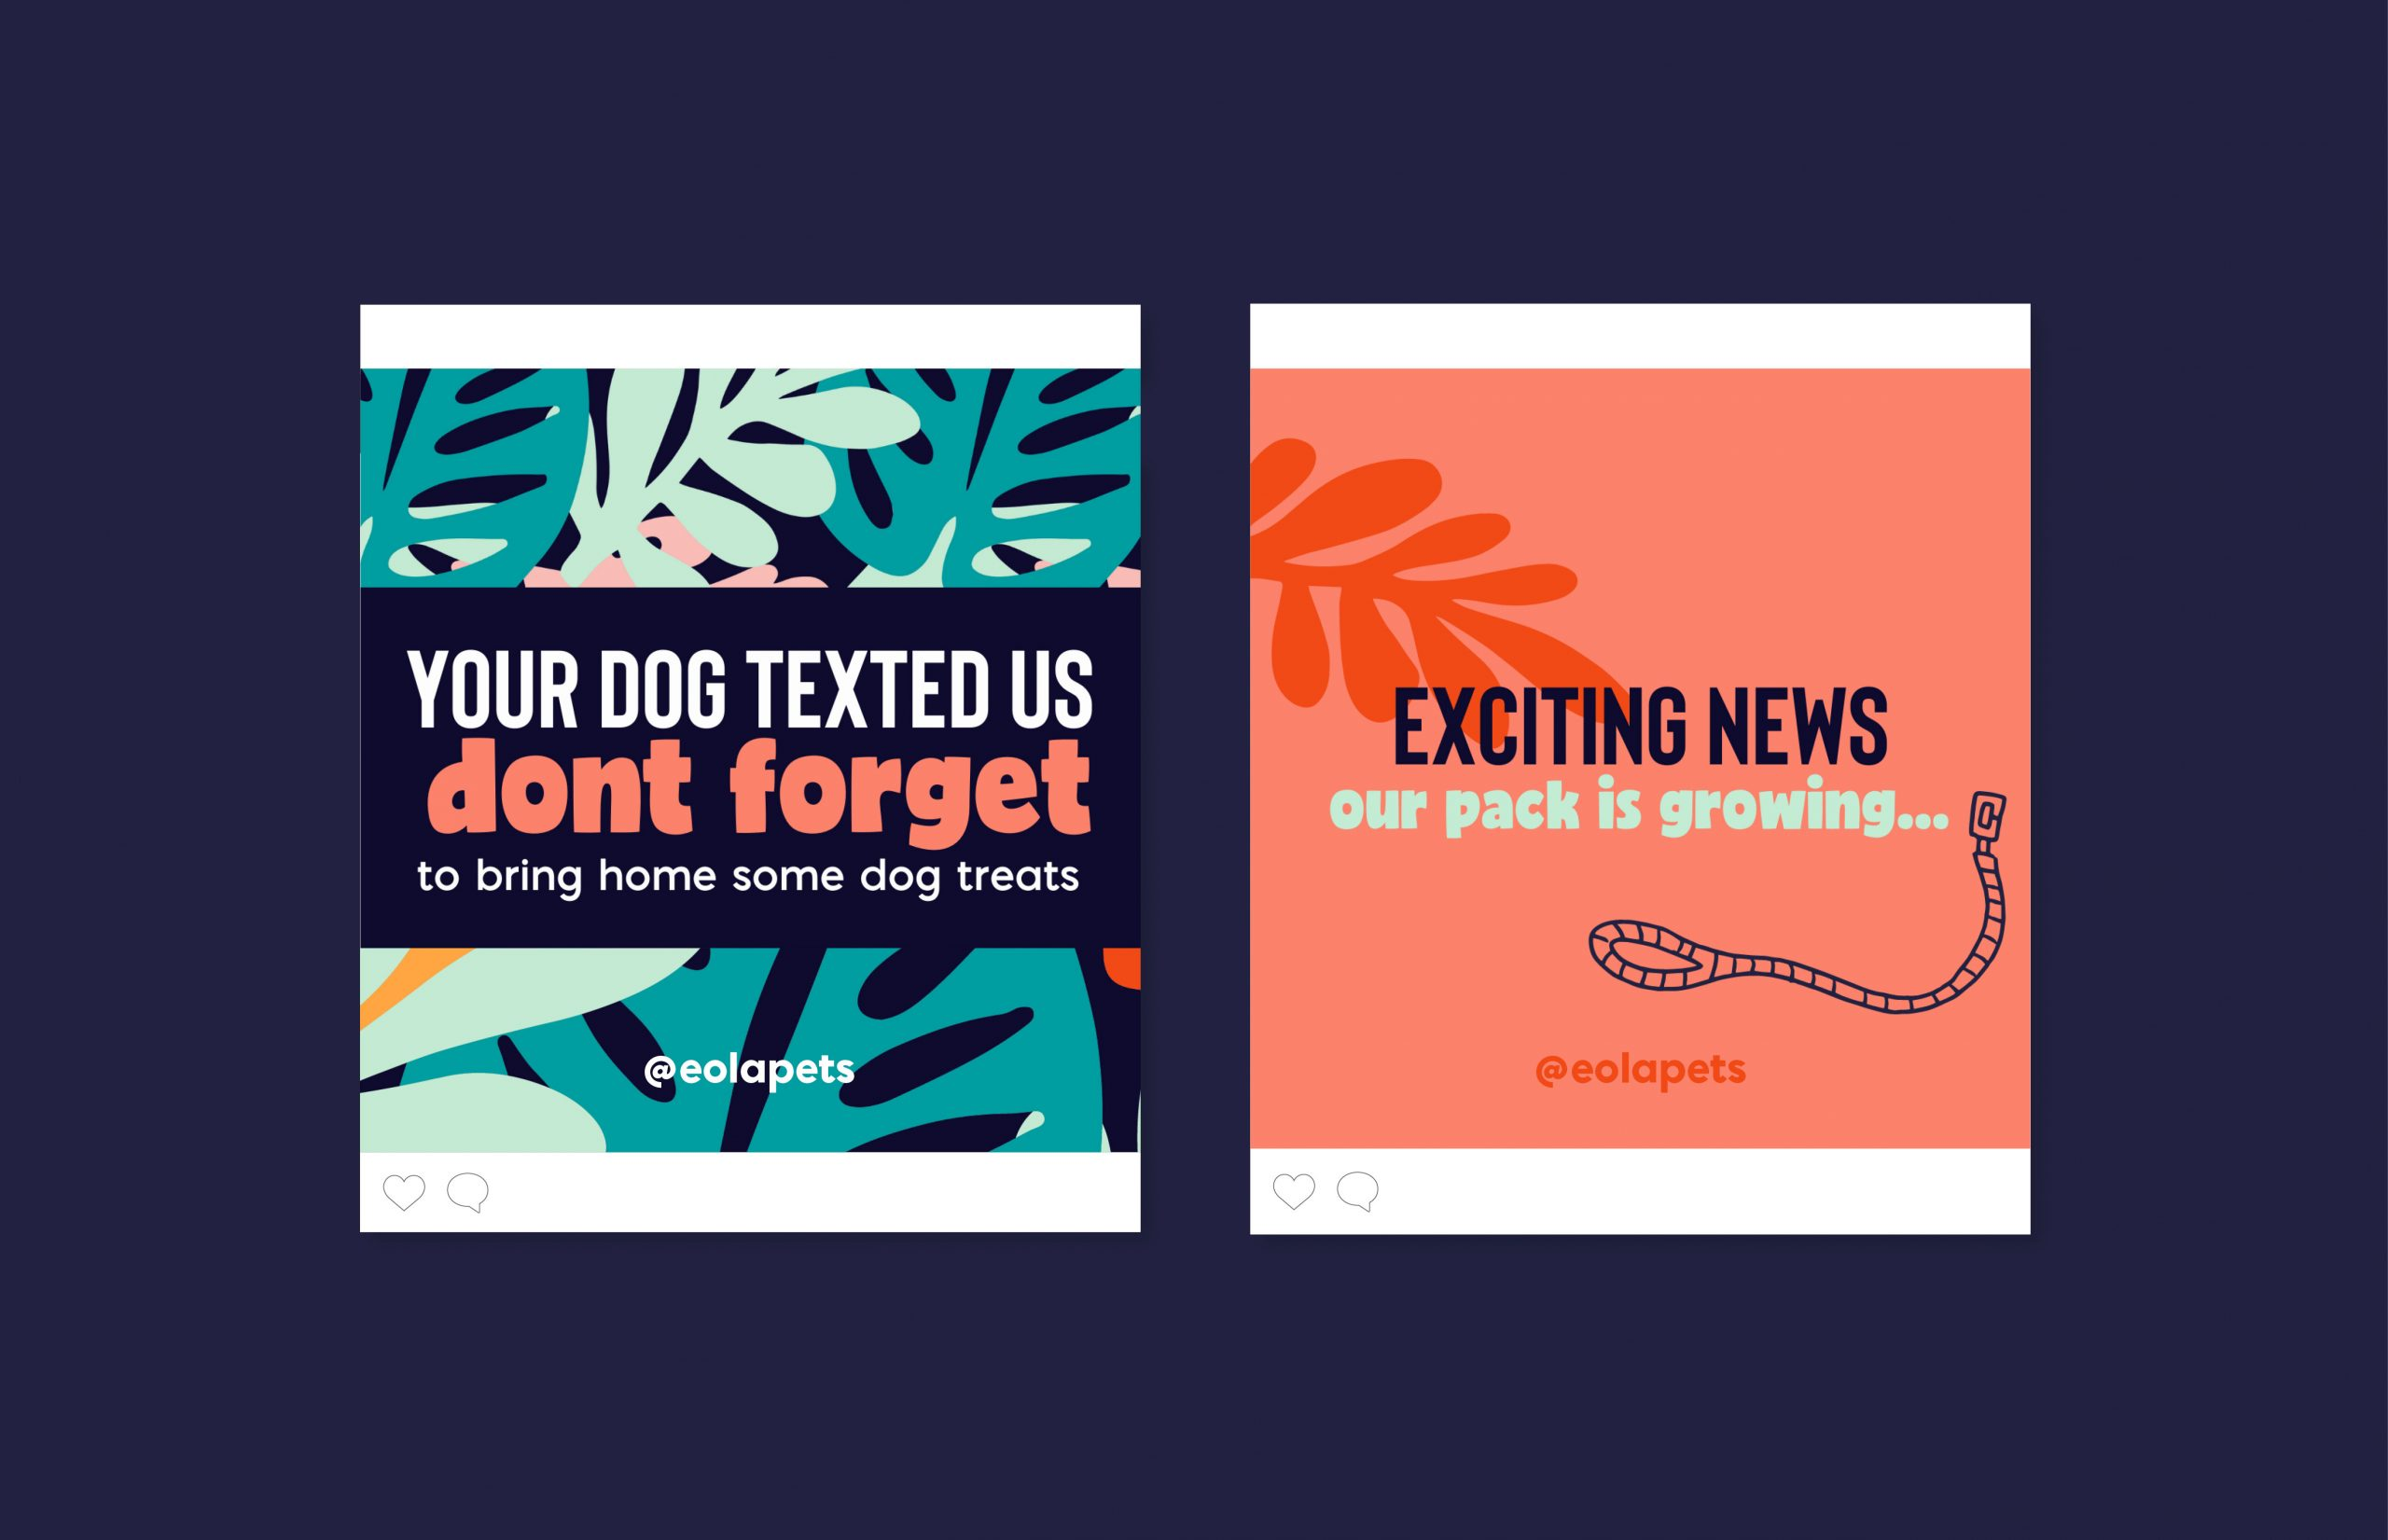 Your dog text us don't forget to bring home some dog treats instagram ad